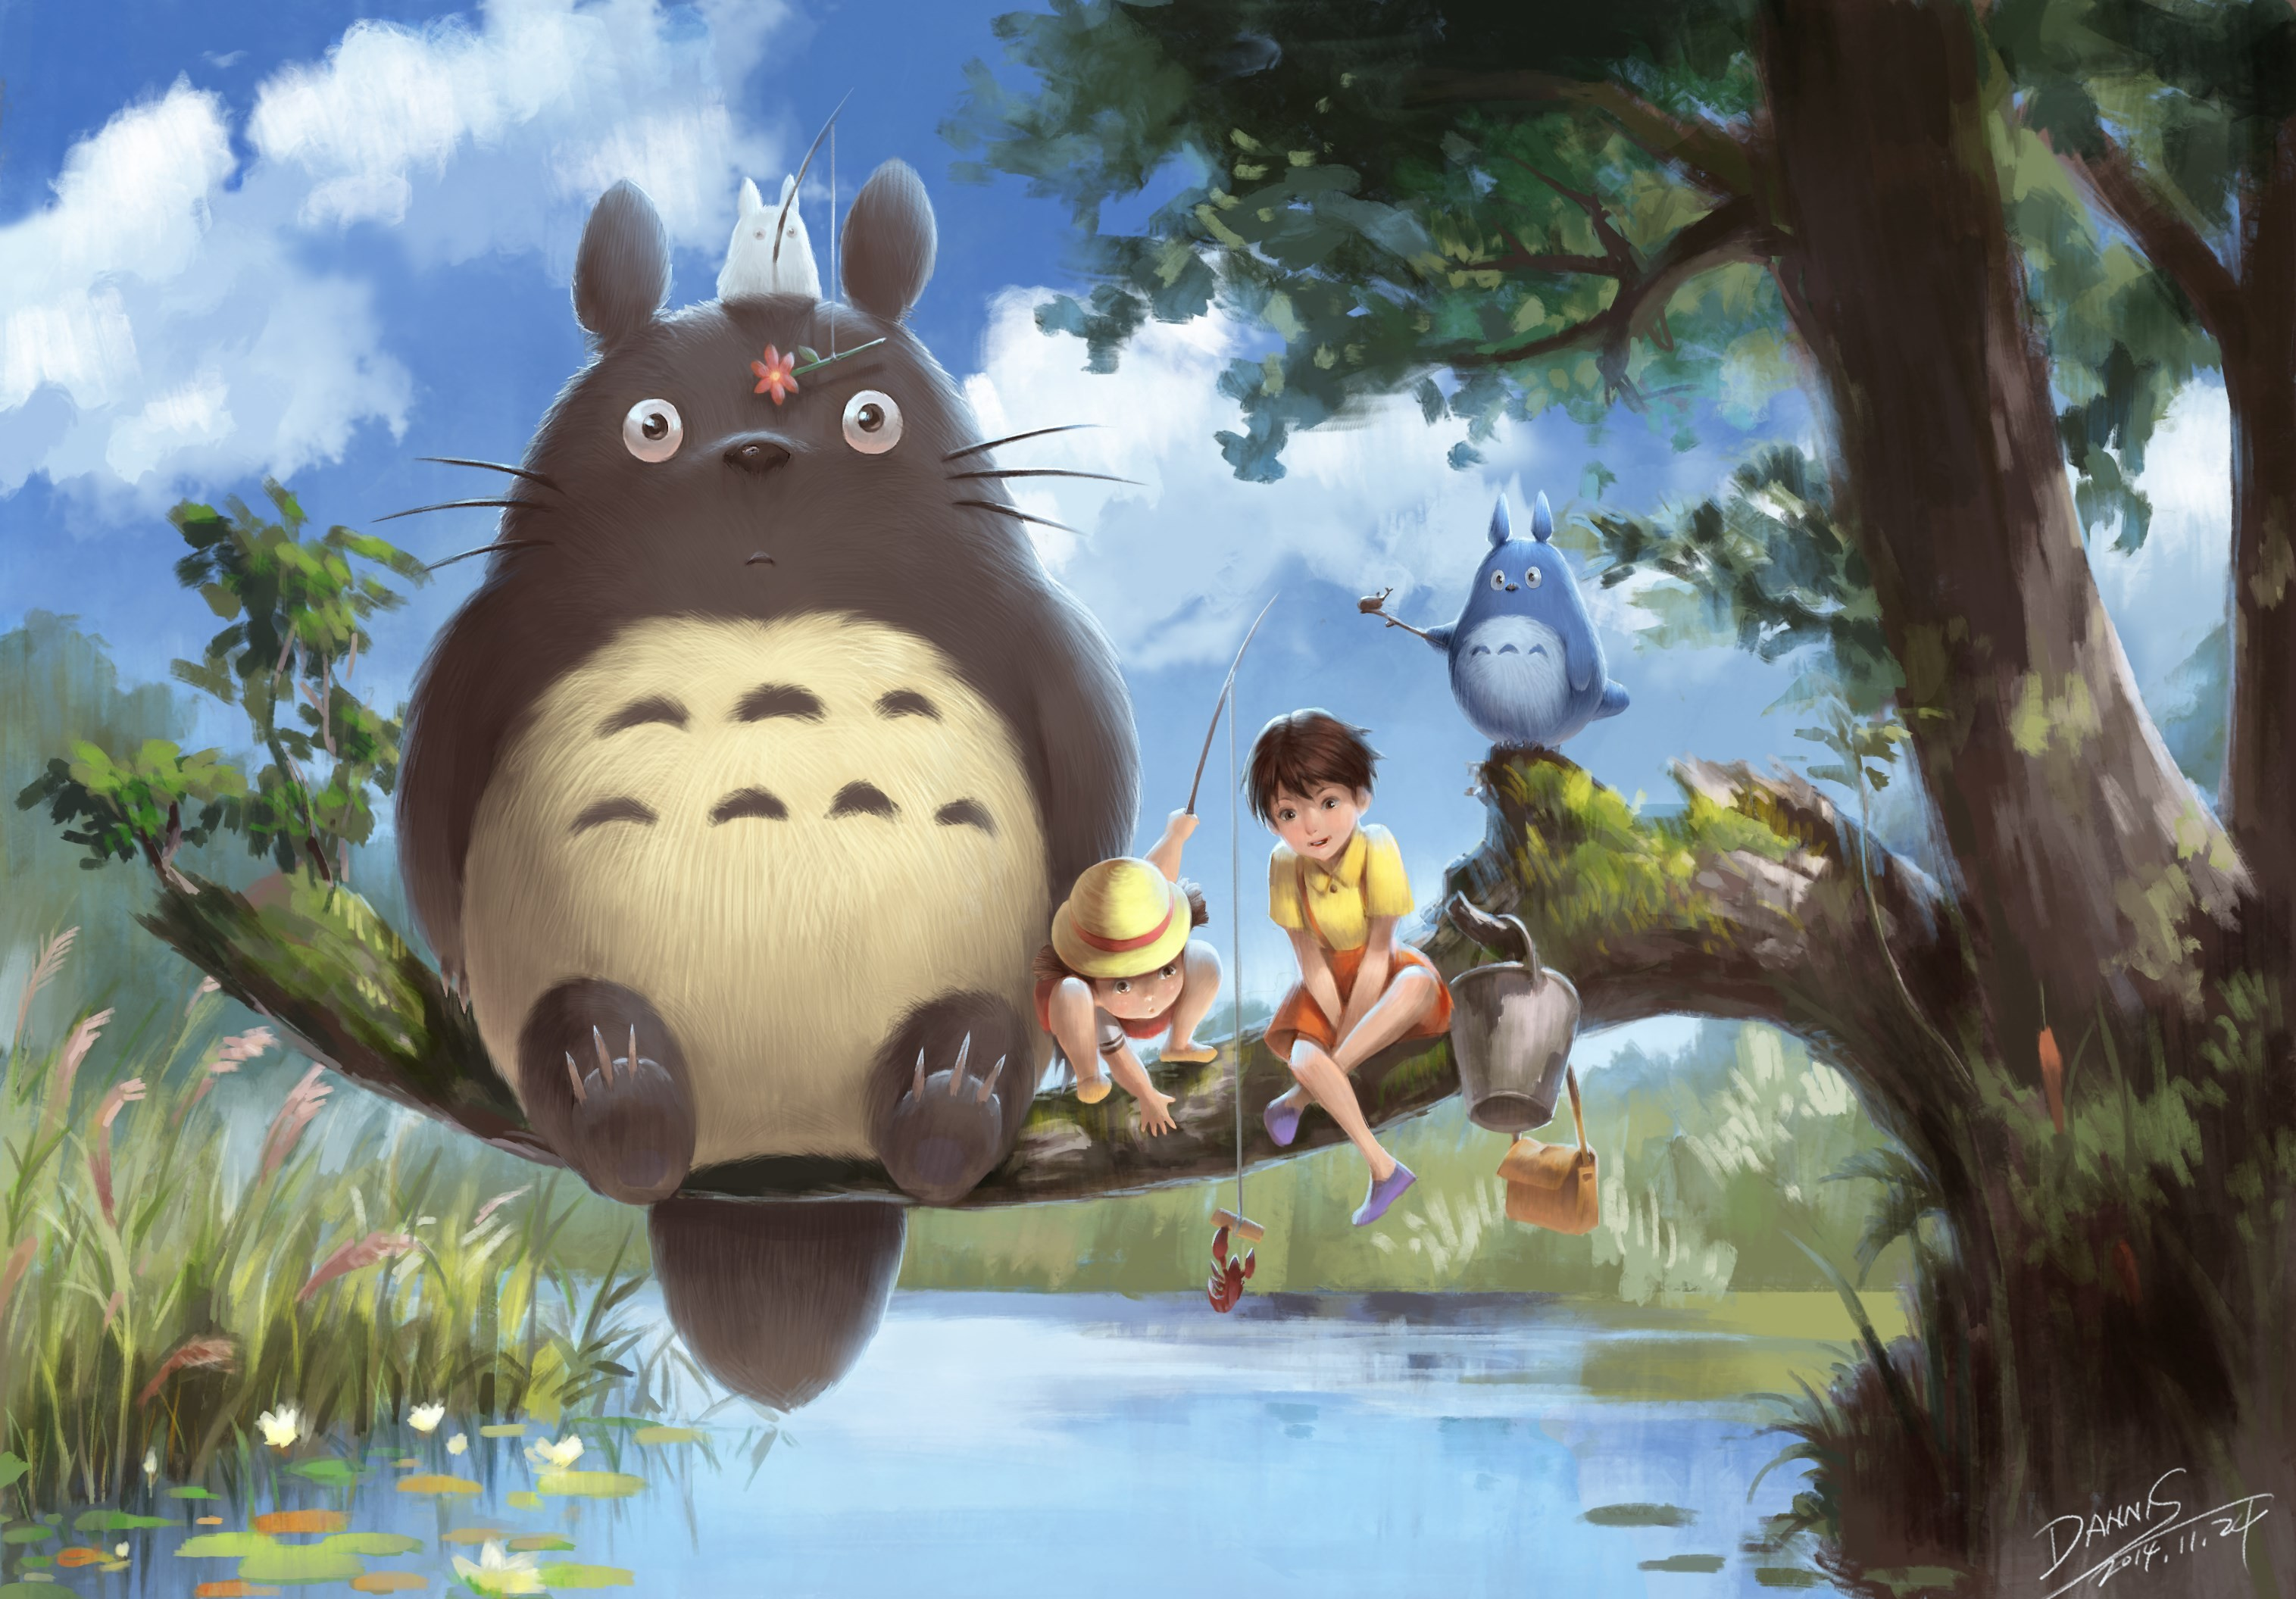 Snorlax Wallpaper Iphone Hd My Neighbor Totoro Wallpaper 183 ① Download Free Beautiful